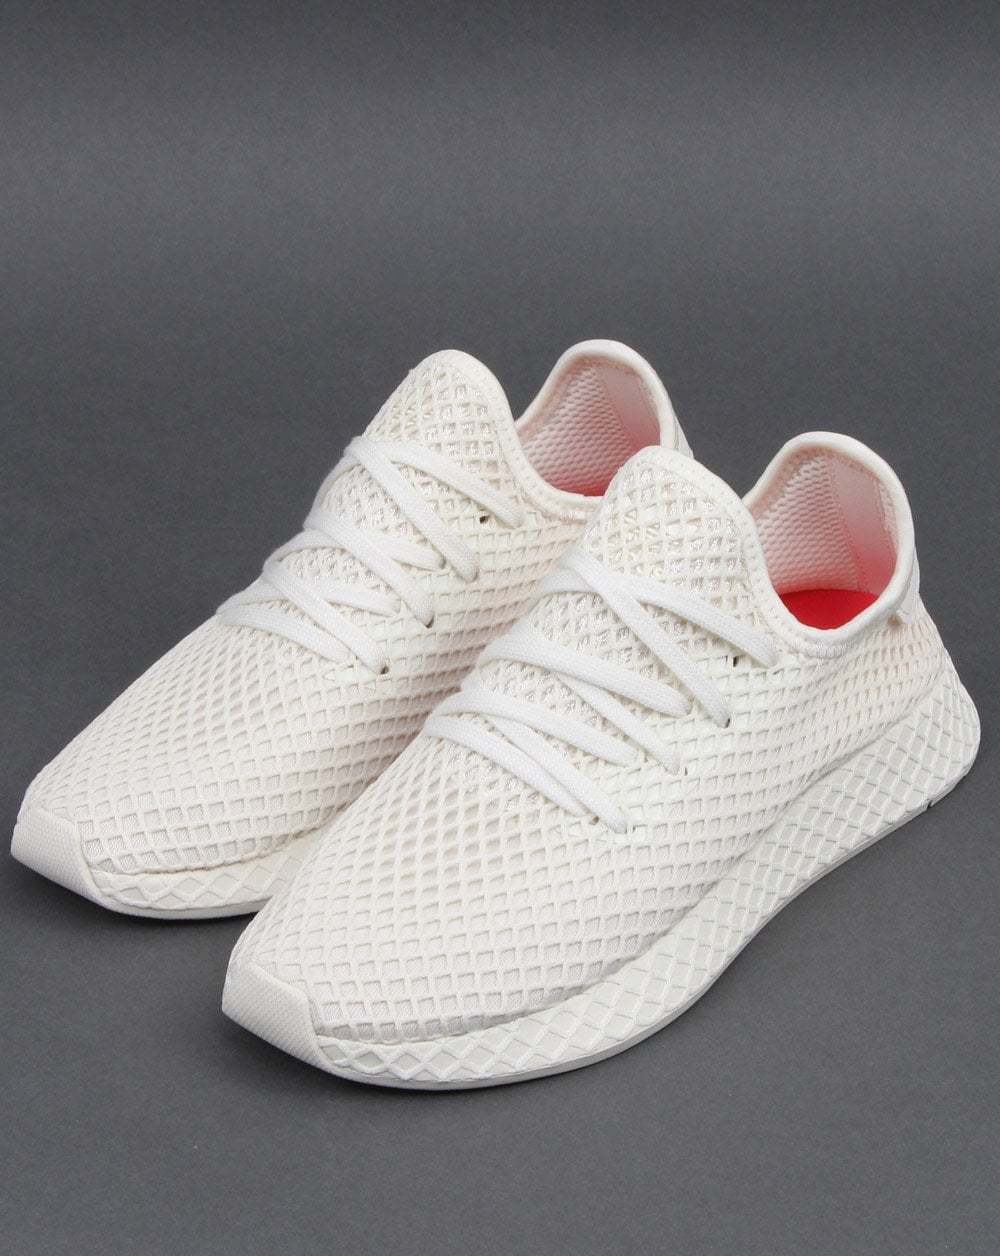 ef5839276d3 Adidas Deerupt Runner Trainers White Red - Shop Adidas Here At 80sCC